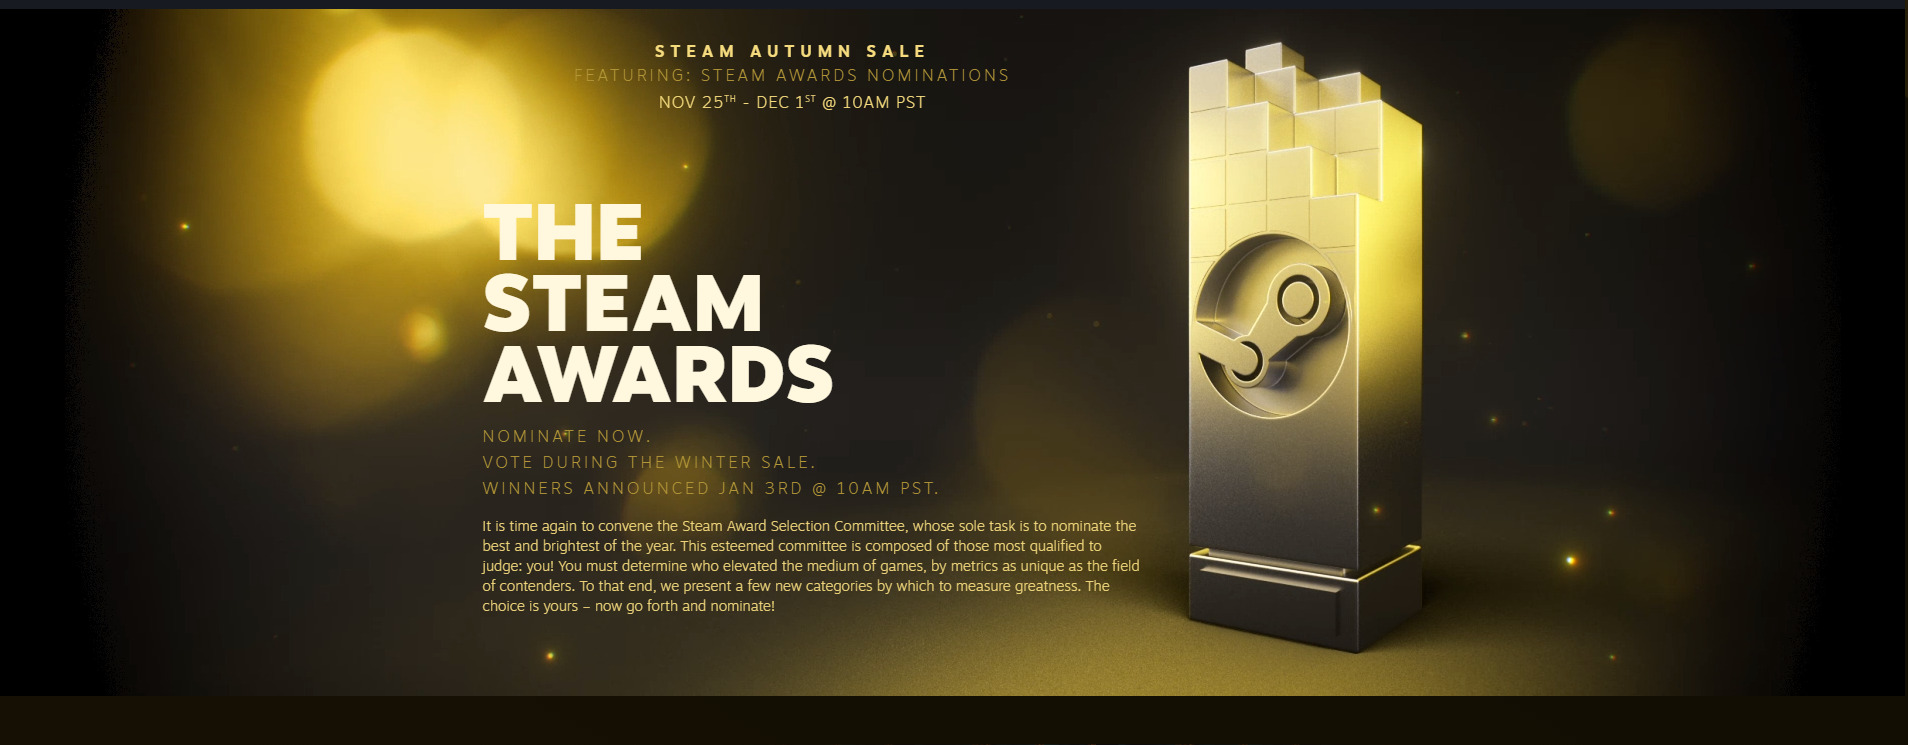 The 2020 Steam Awards Are Ready For Their Nomination With The Autumn Steam Sale